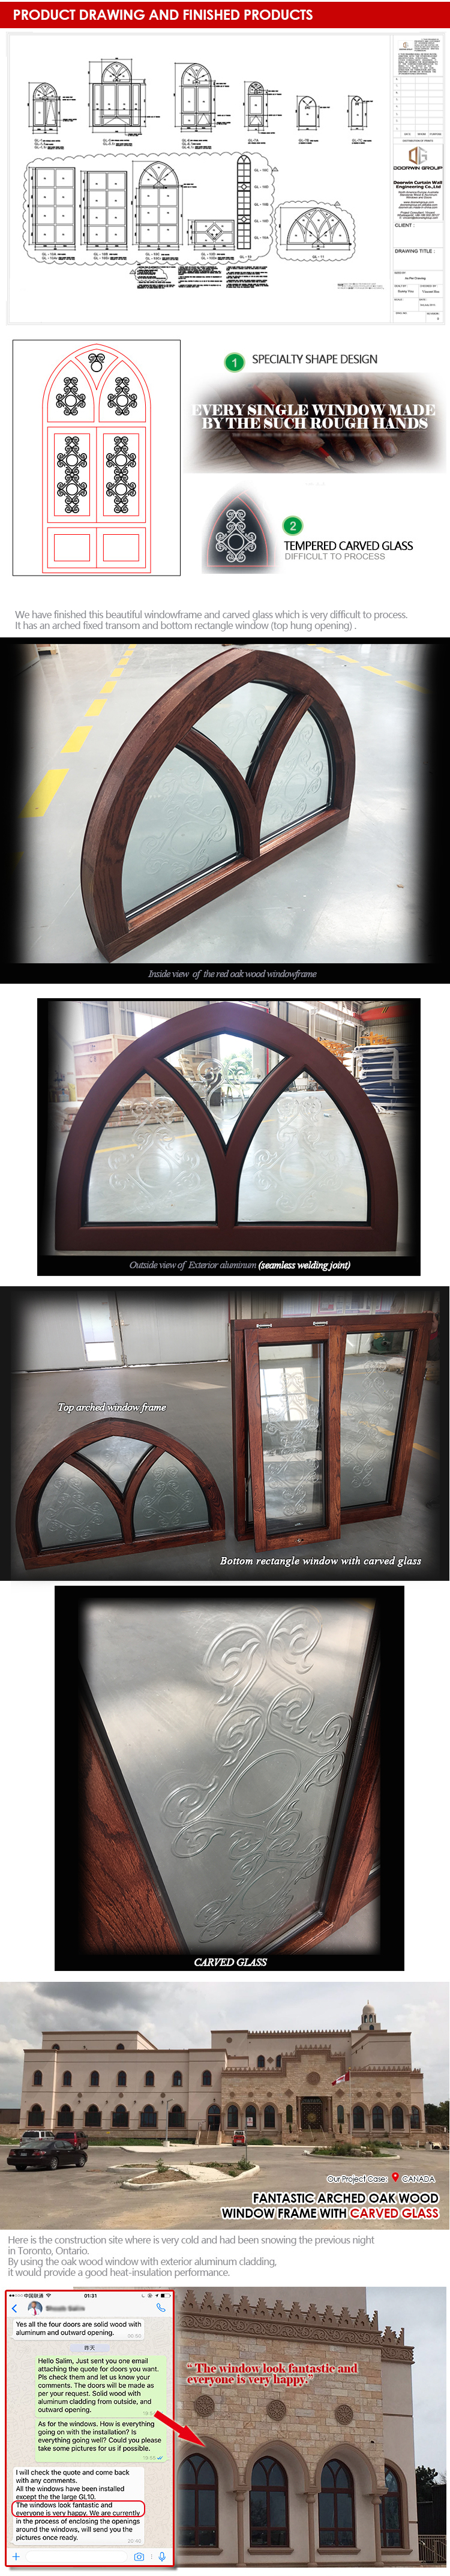 church glass windows design